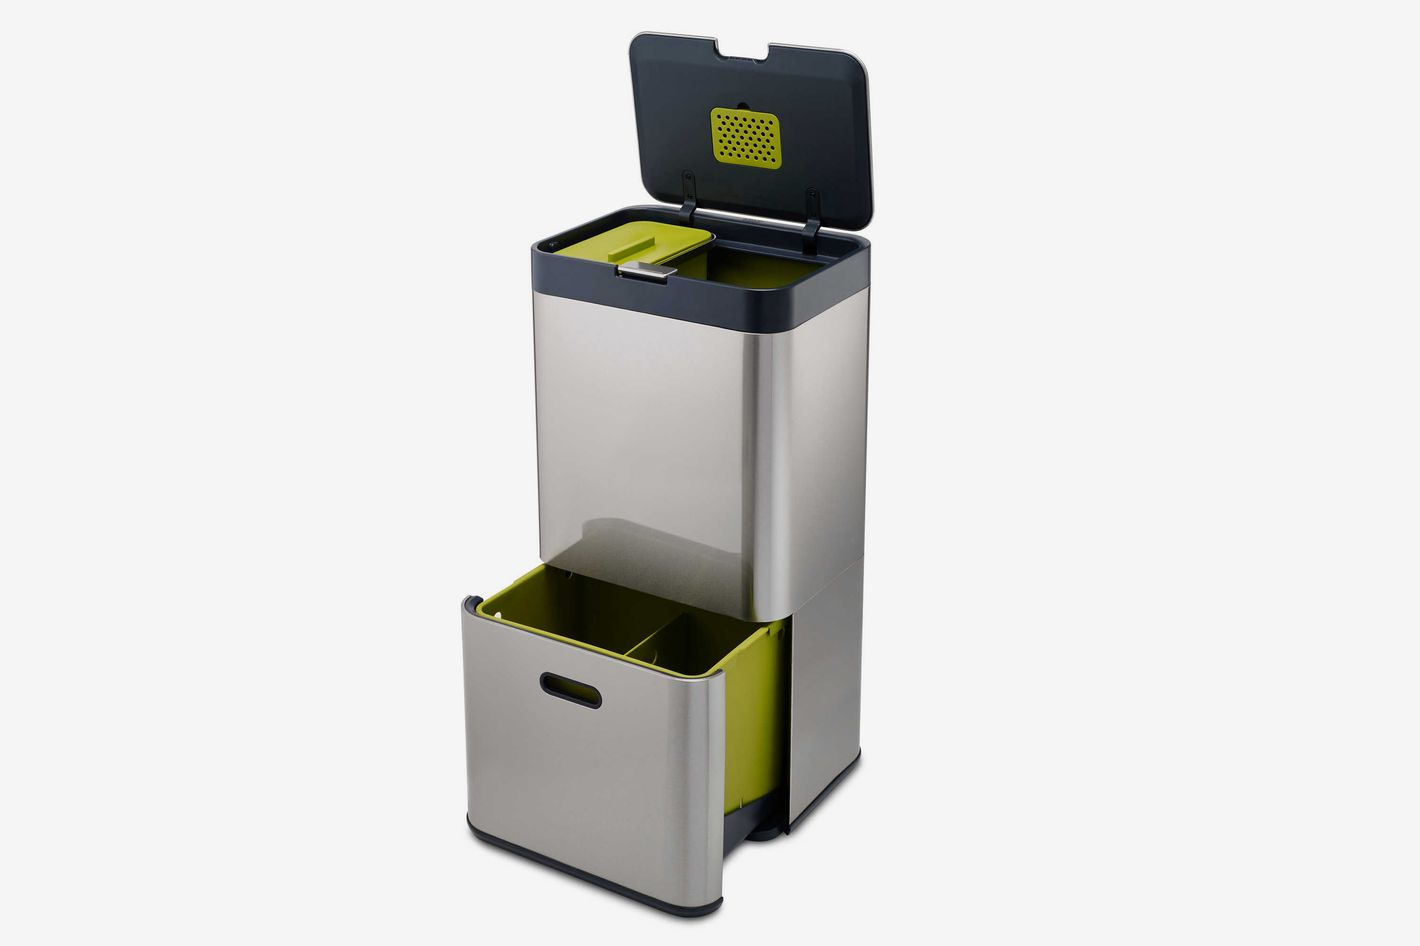 Joseph Joseph Totem 60 Stainless Steel Waste Separation & Recycling Unit